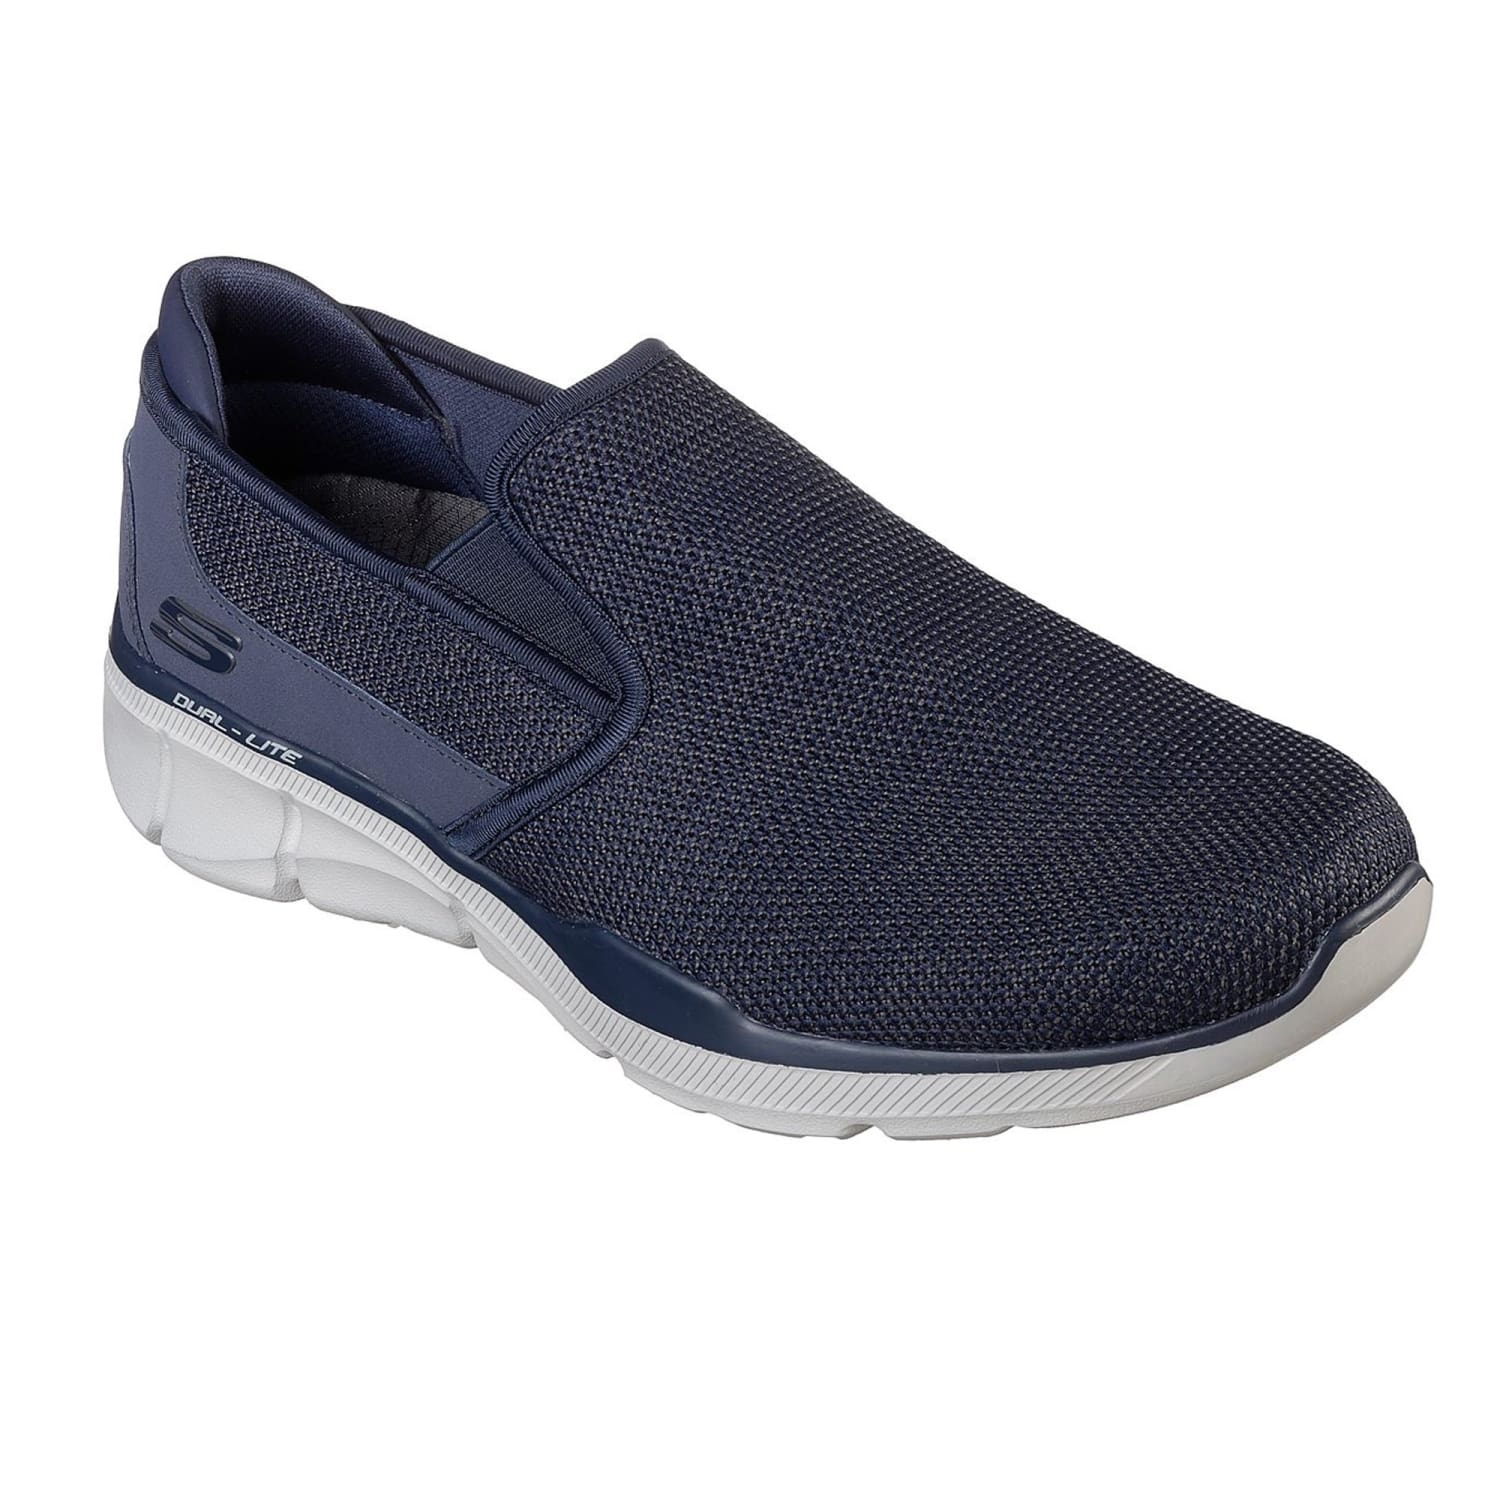 Skechers Trainers - 52937 - Sumnin - Navy 1